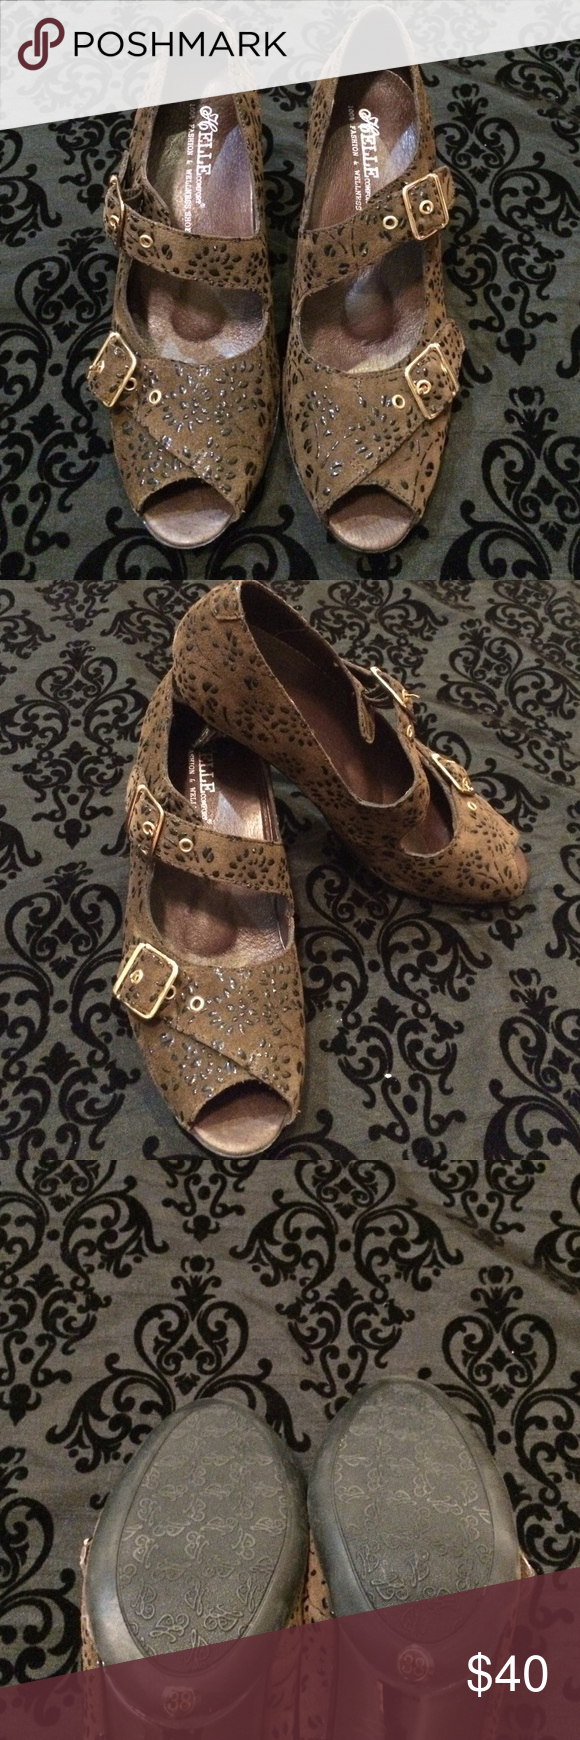 Gorgeous brown dress shoes Excellent condition well-made never been worn ready to wear Elle Shoes Heels